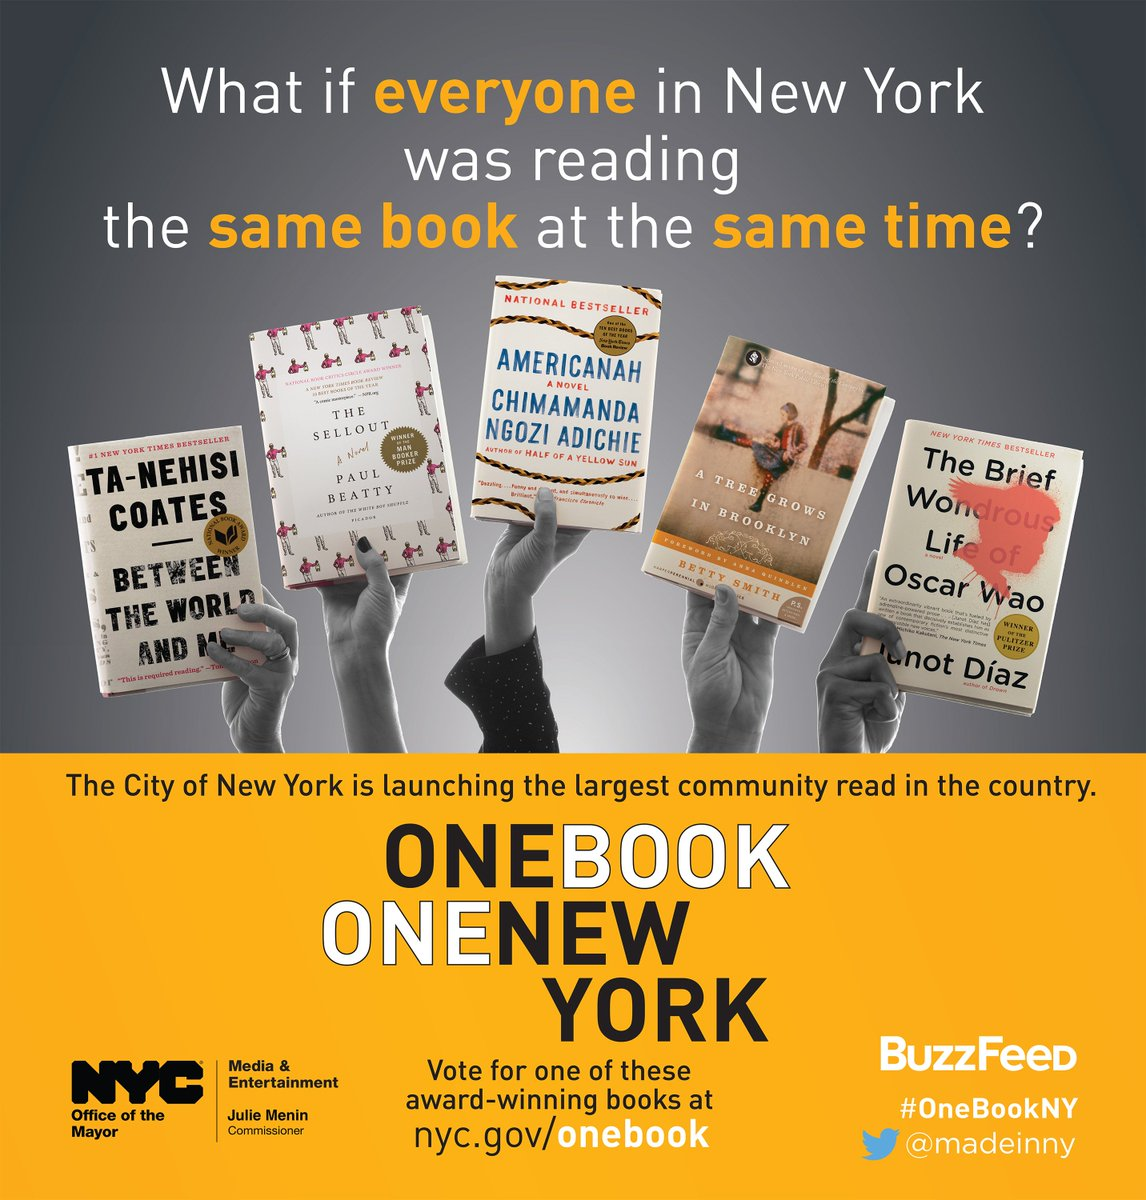 Have you voted for your #OneBookNY pick yet? https://t.co/TZUYyvZ4dK https://t.co/hfDH8ii66j